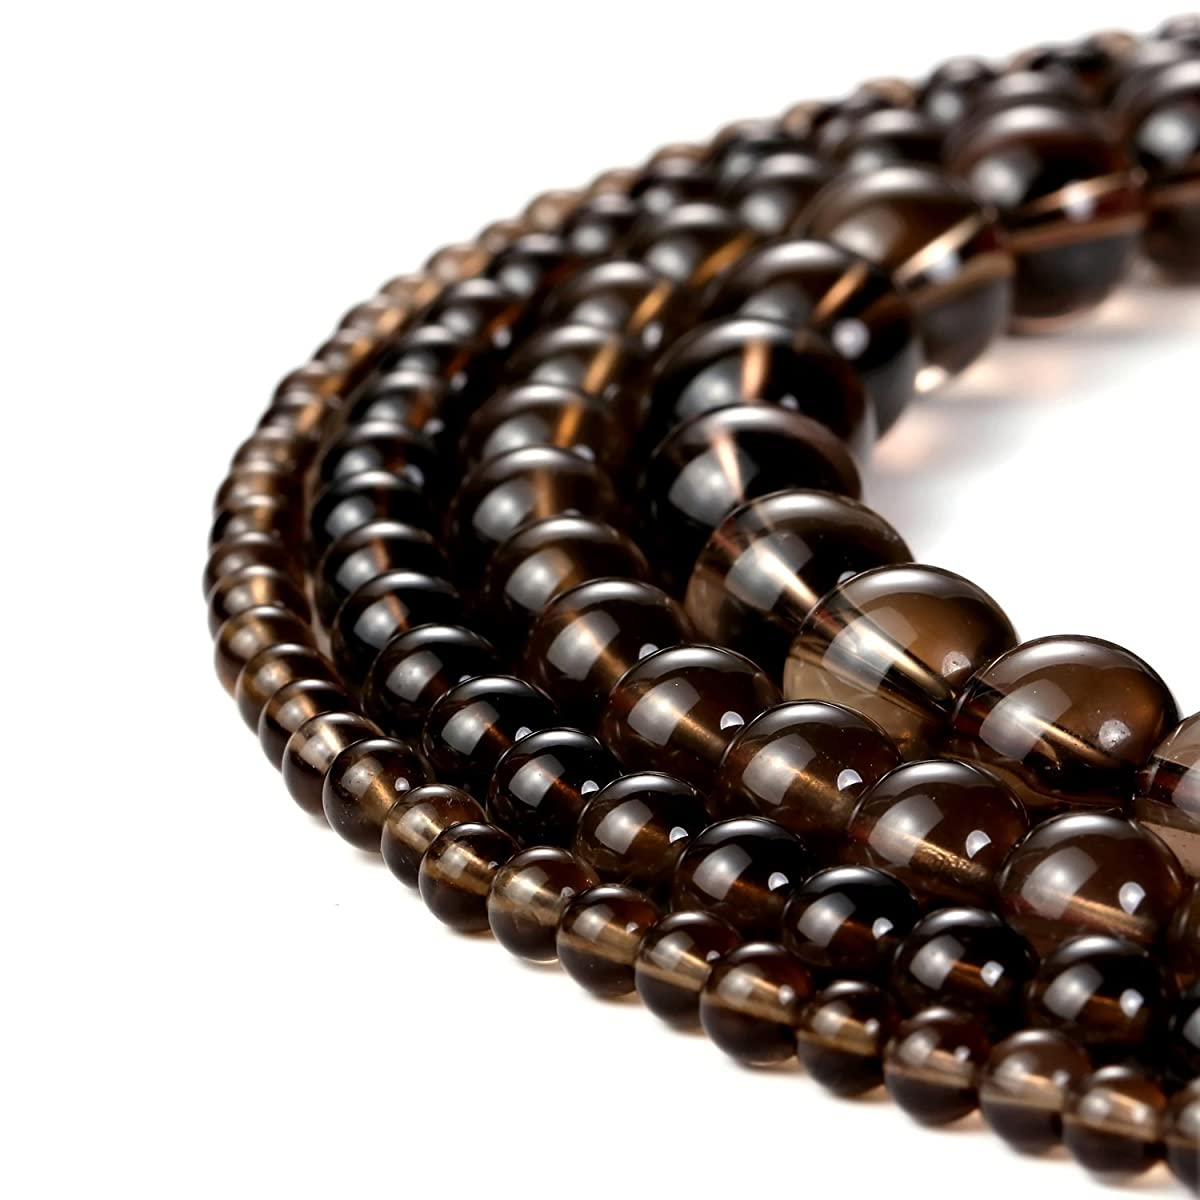 8mm Natural Smoky Quartz Beads Round Loose Gemstone Beads for Jewelry Making Strand 15 Inch (47-50pcs)